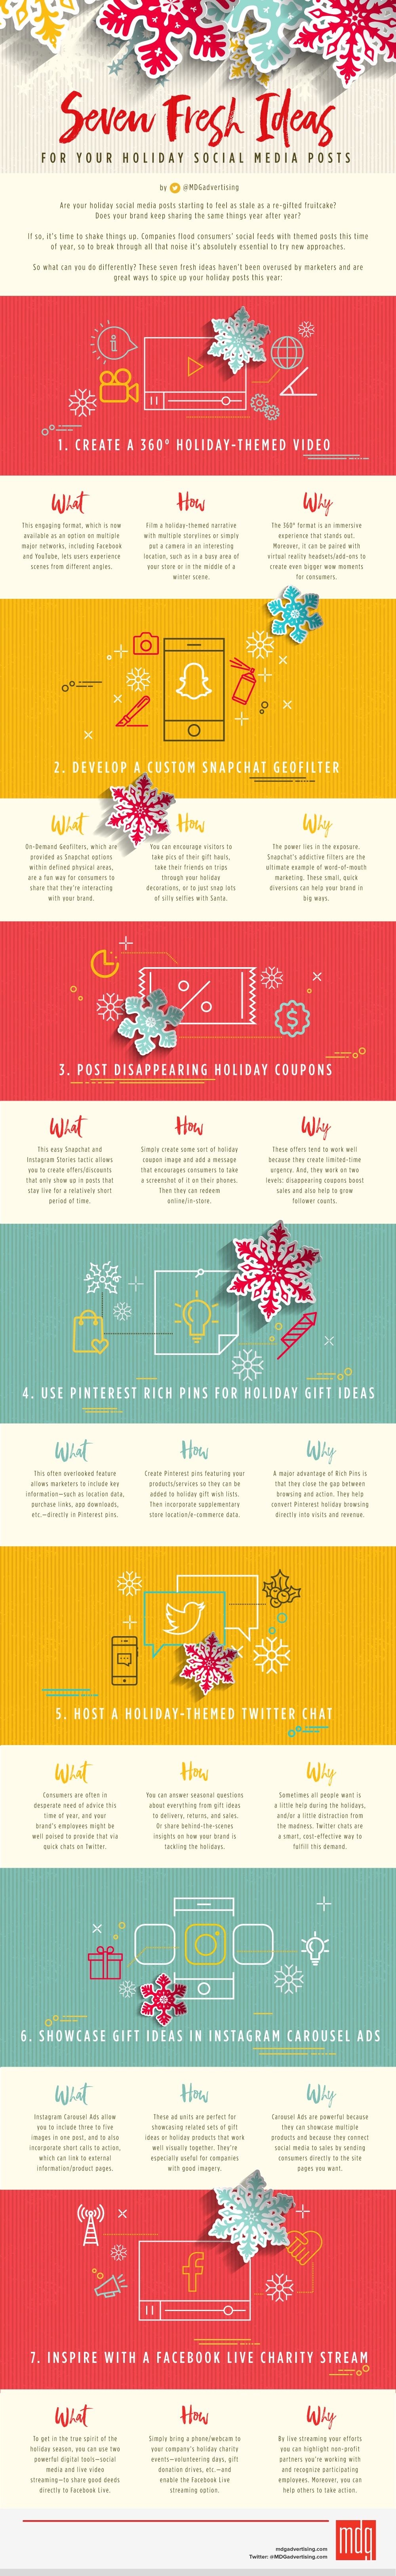 holiday social media posts - infographic.jpg